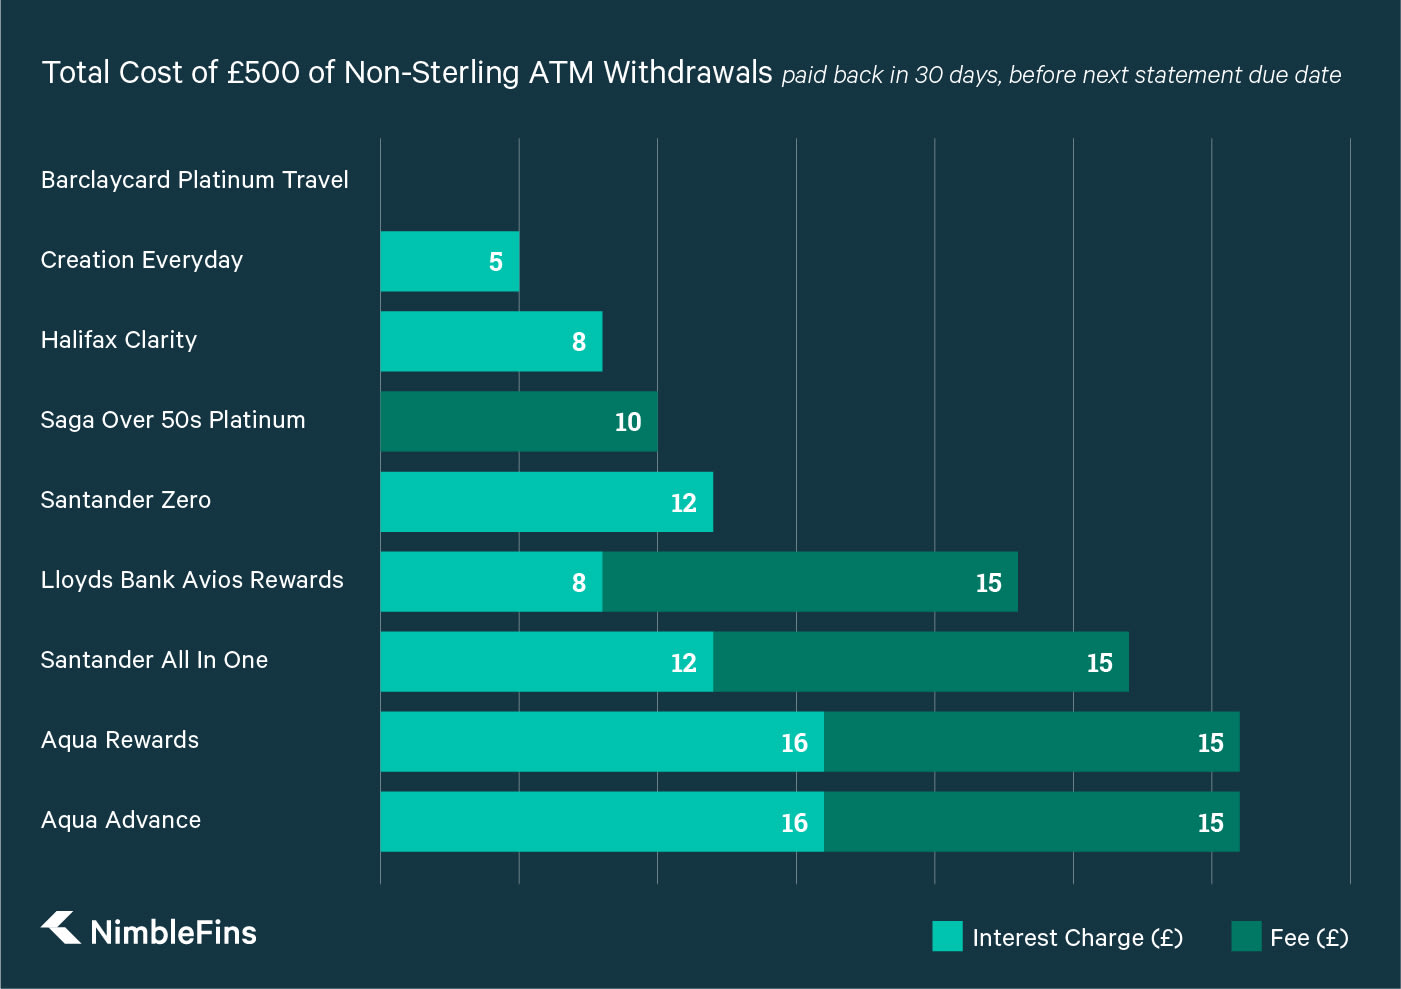 chart Comparing the Cost of £500 worth of Foreign Currency Withdrawals across 9 of the Best Travel Cards